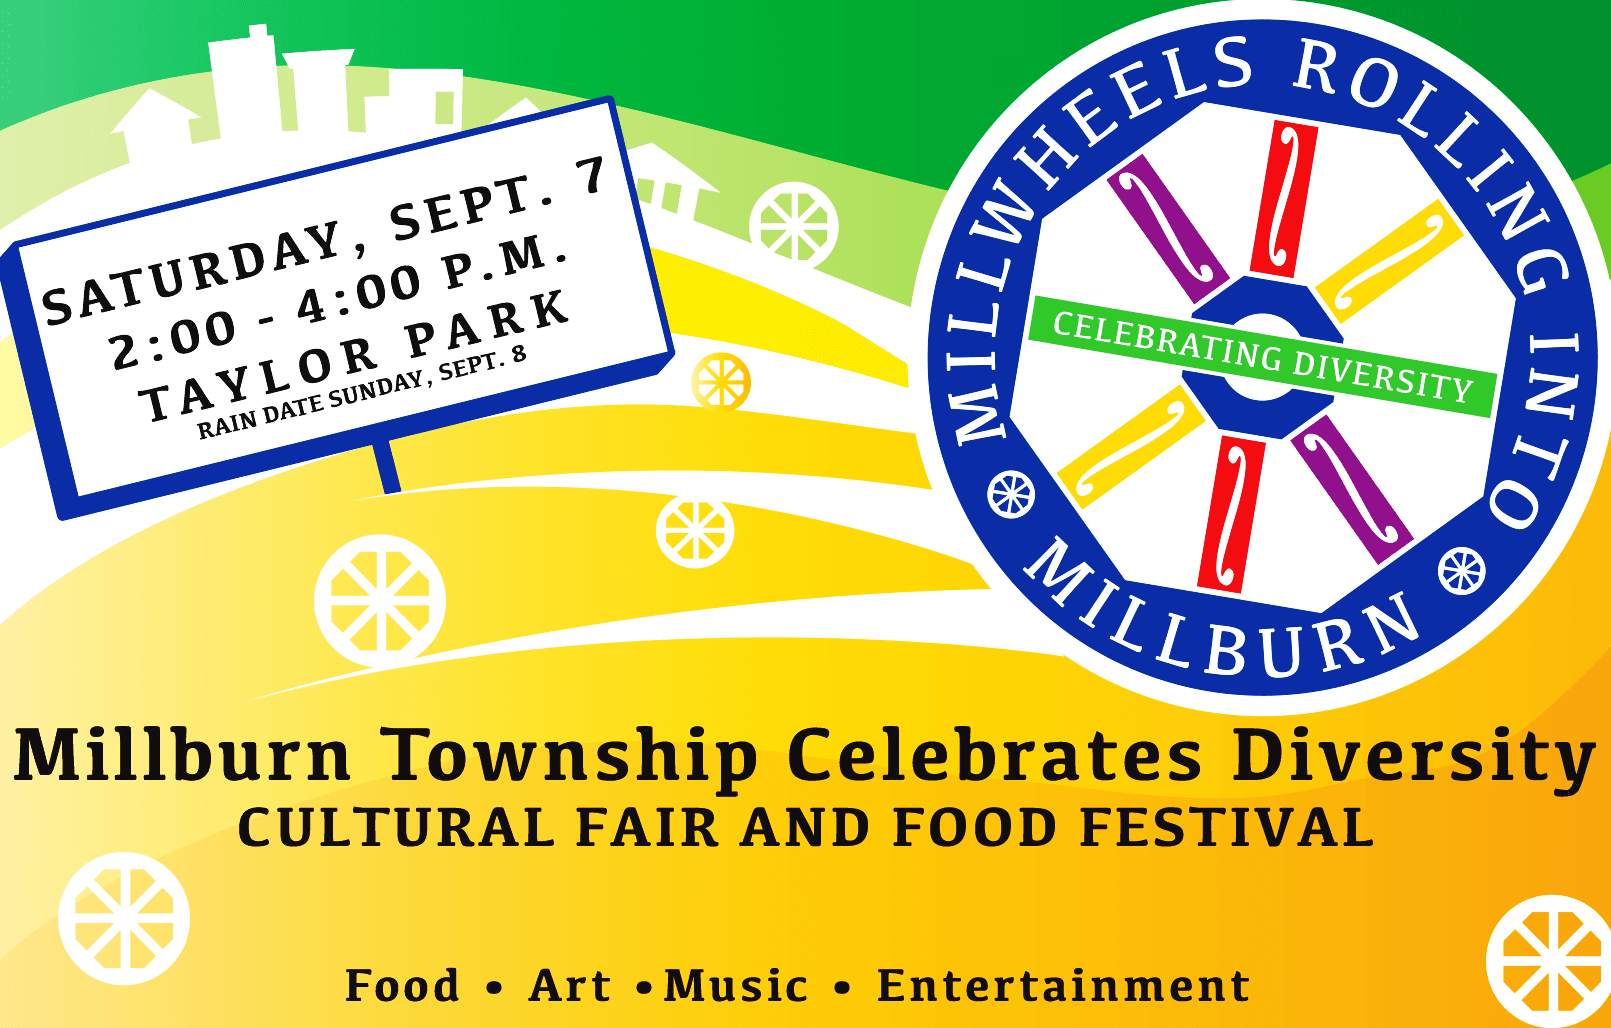 Flyer for Cultural Fair and Food Festival